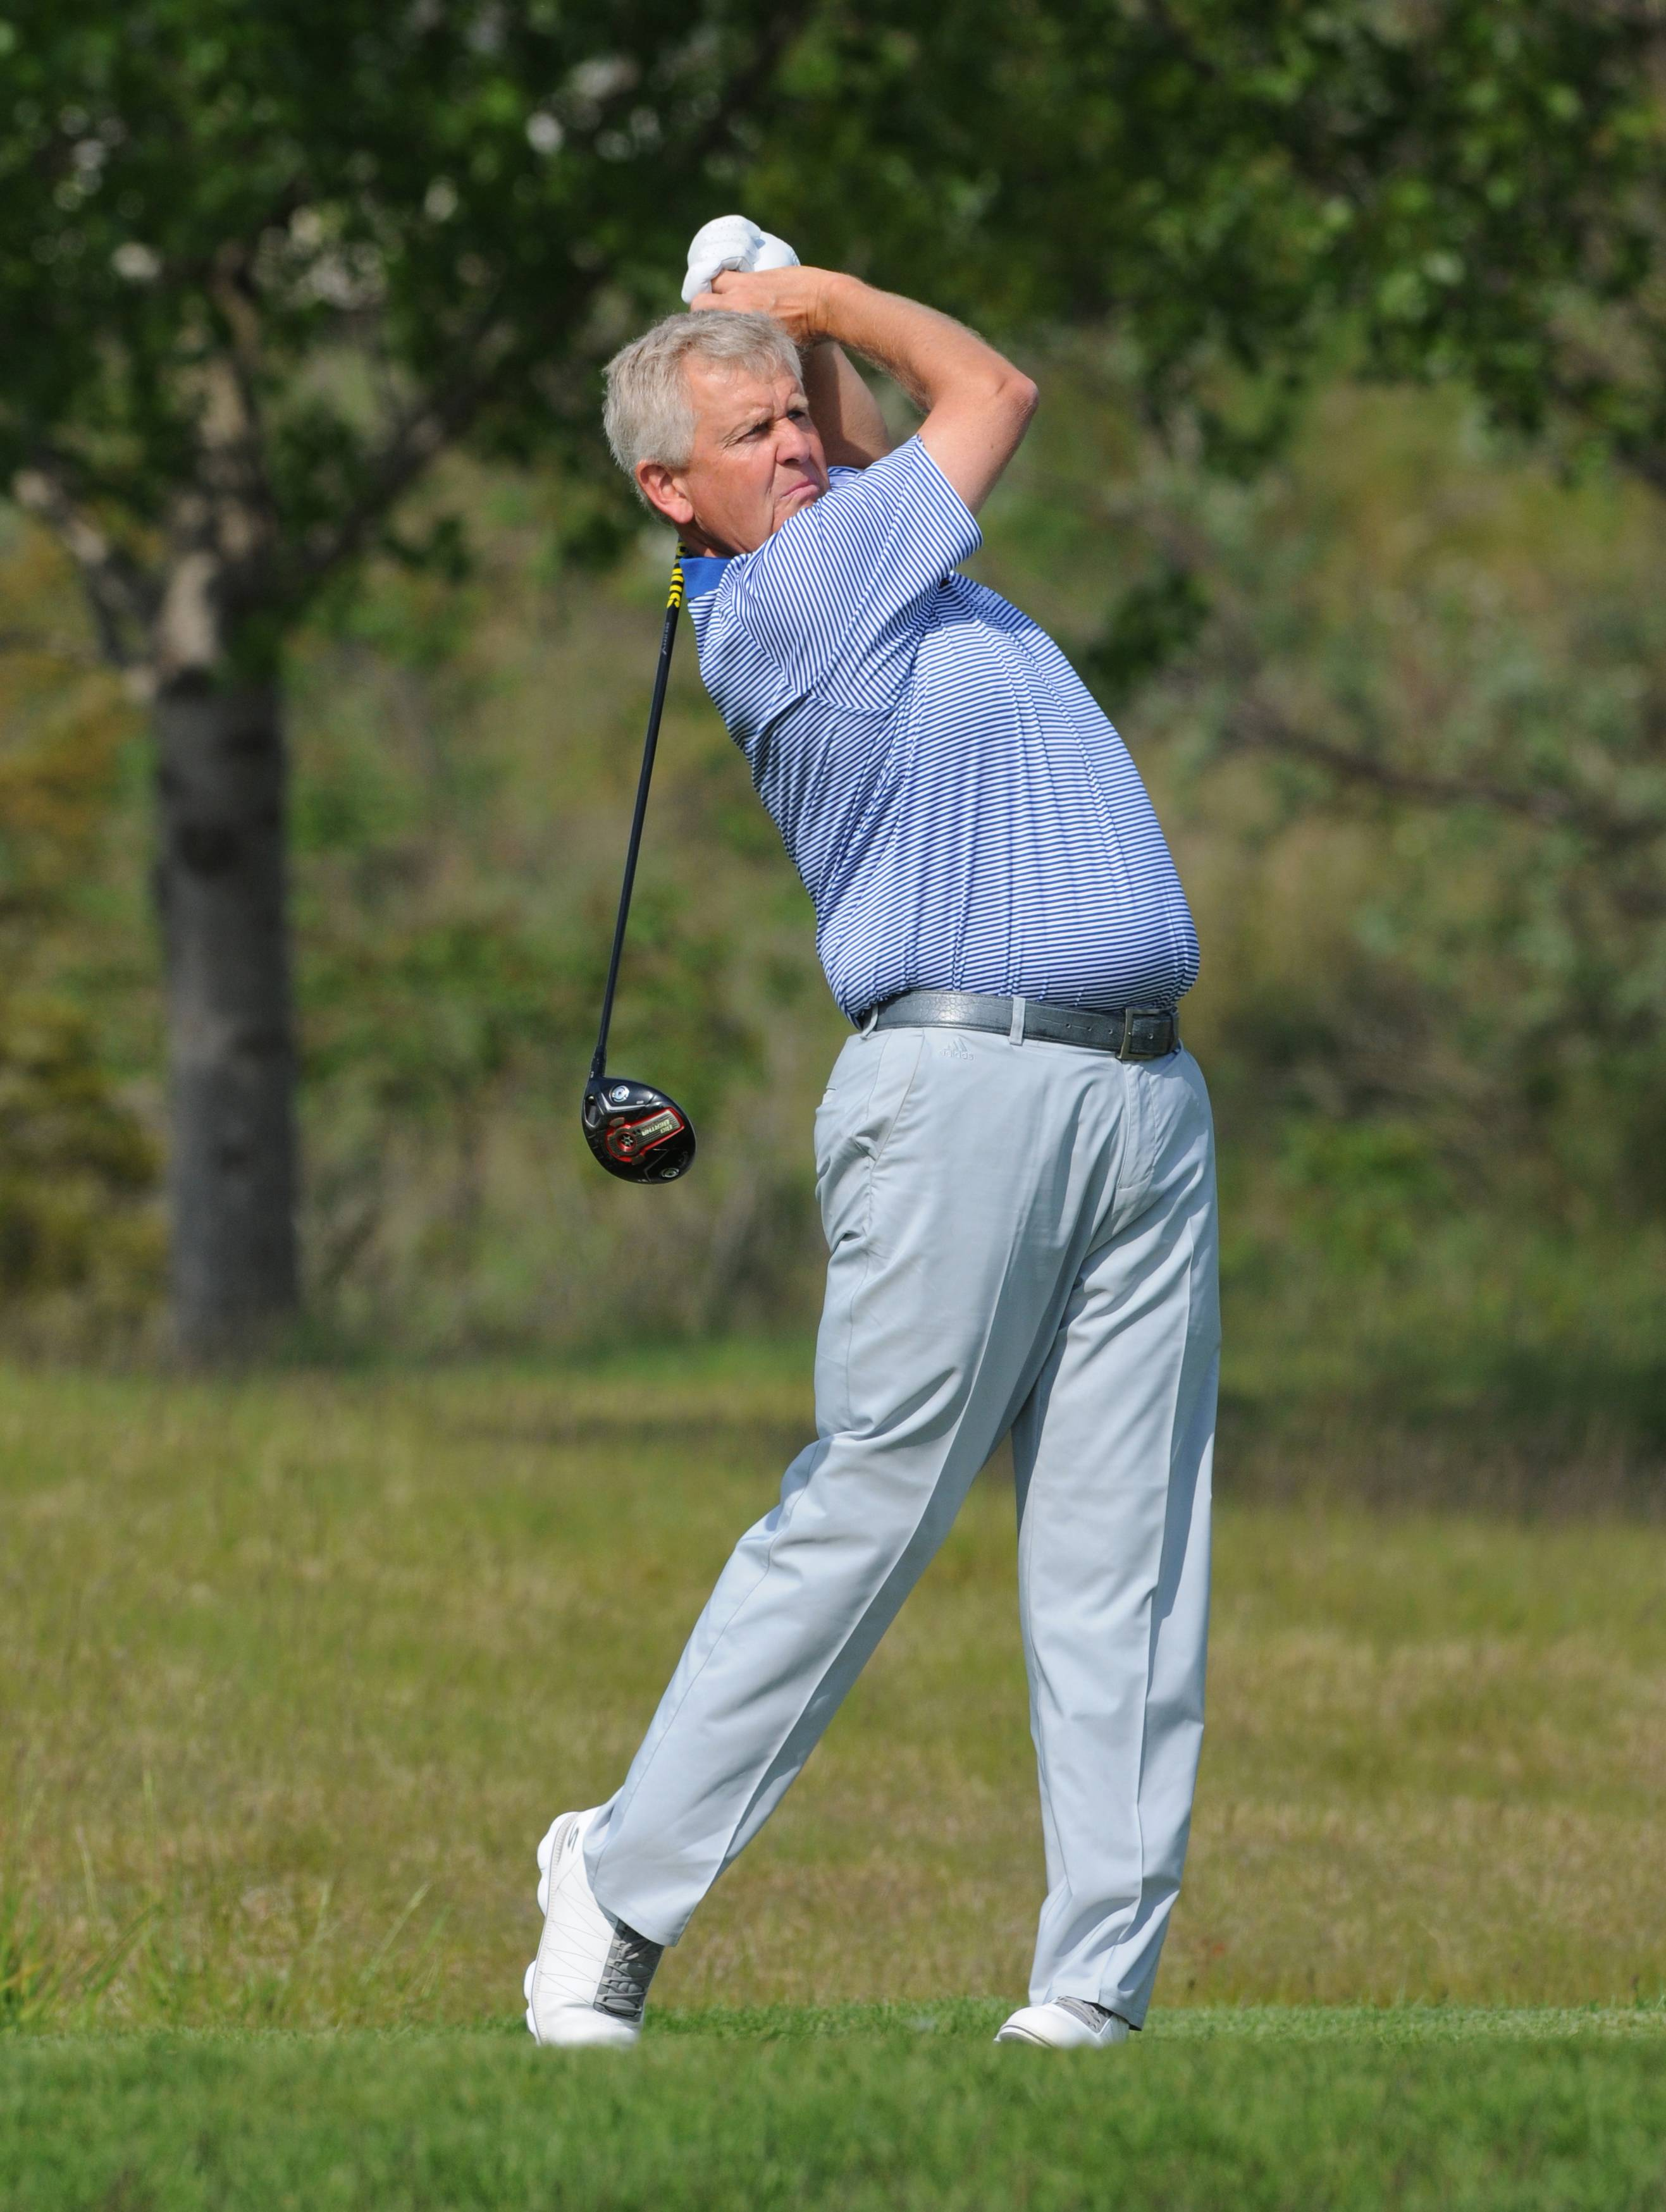 Colin Montgomerie is seeking his third straight Senior PGA Championship title. The tournament is hosted by The Golf Club at Harbor Shores in Benton Harbor, Mich.